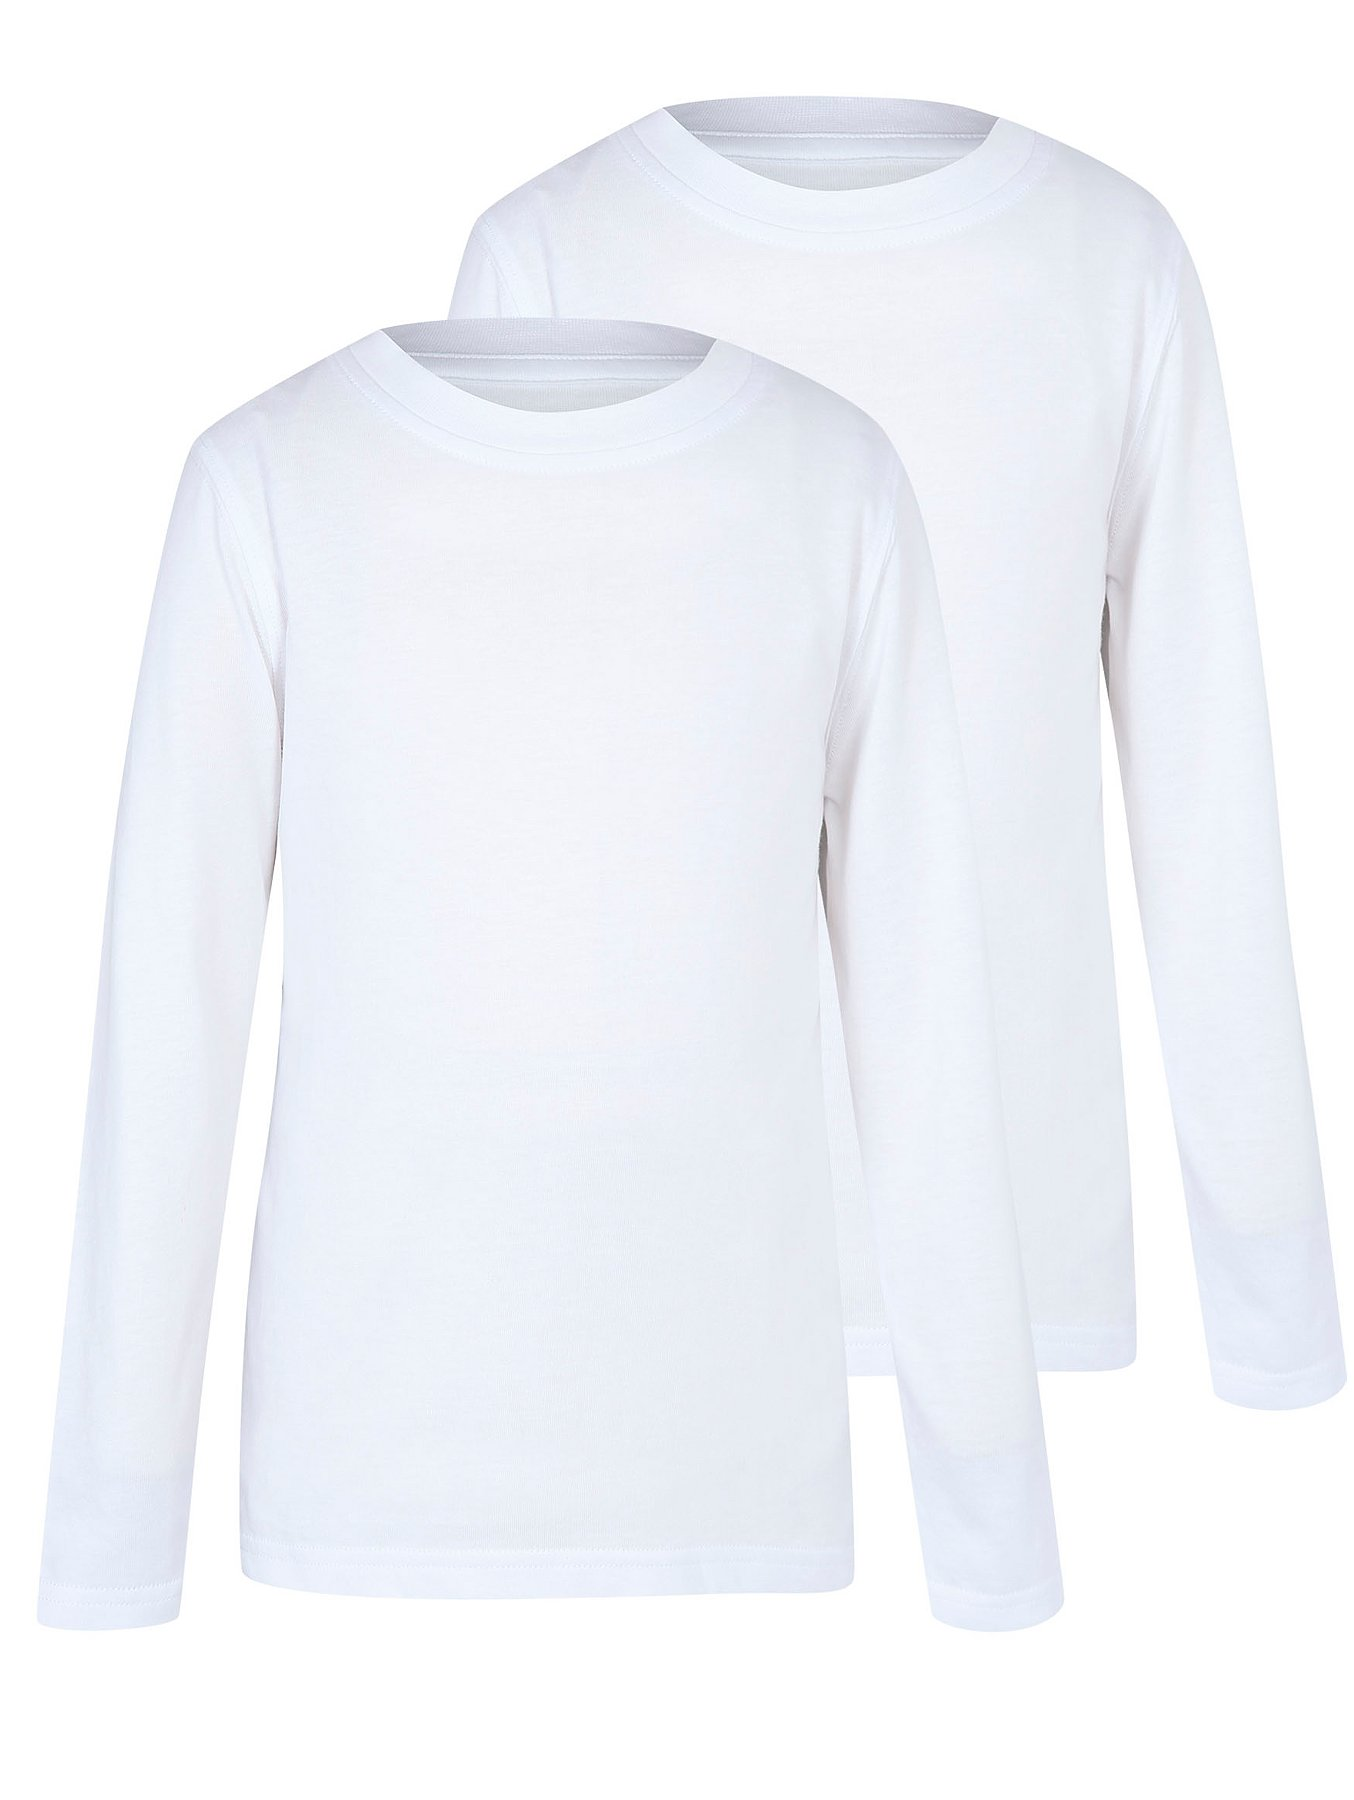 Boys White Crew Neck Long Sleeve School T-Shirt 2 Pack. Reset af6e206a8